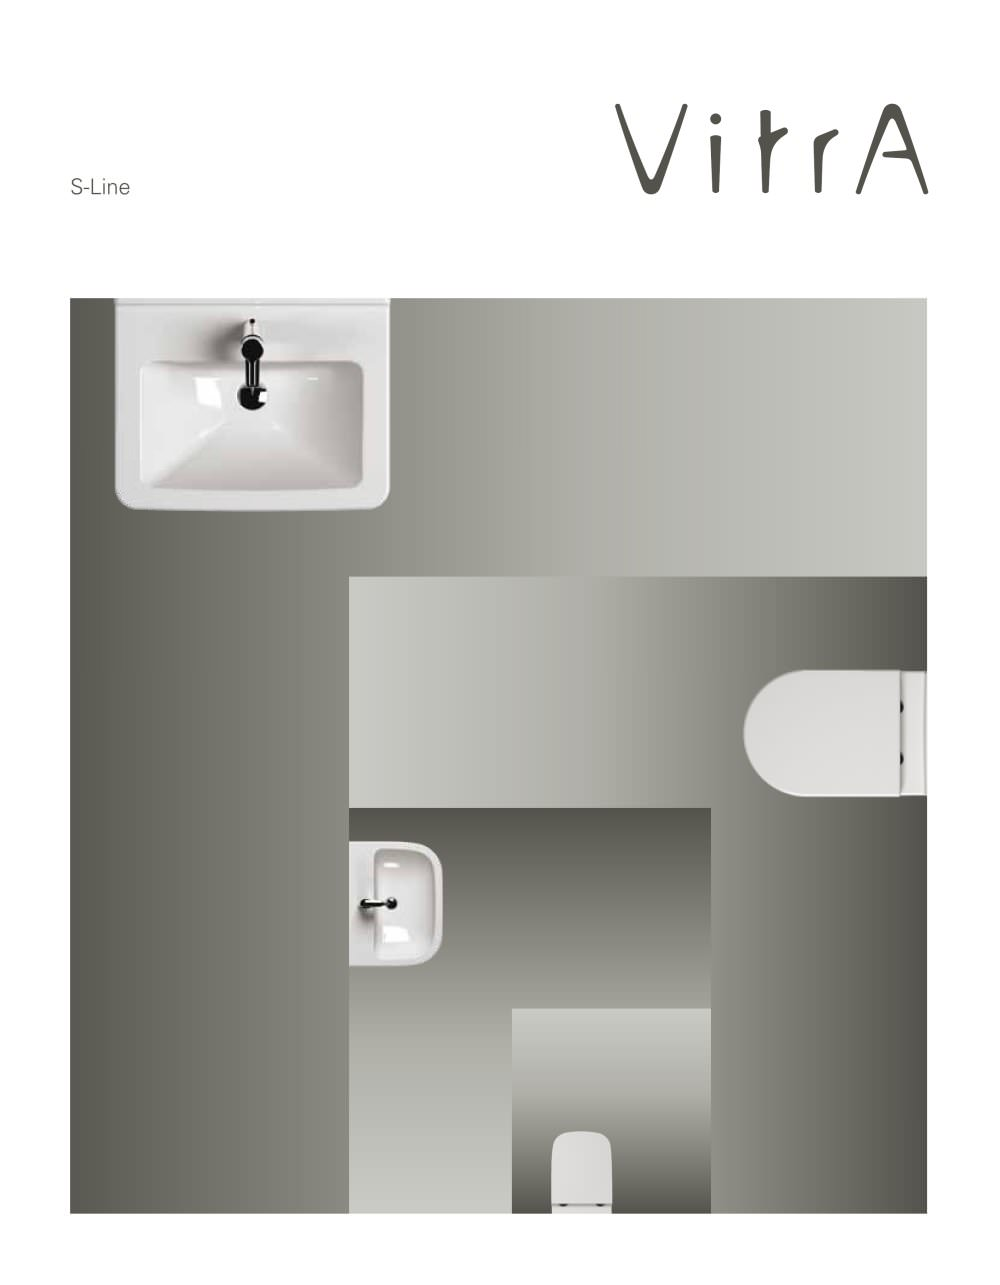 S Line Brochure   1   145 Pages. S Line Brochure   VitrA   PDF Catalogues   Documentation   Brochures